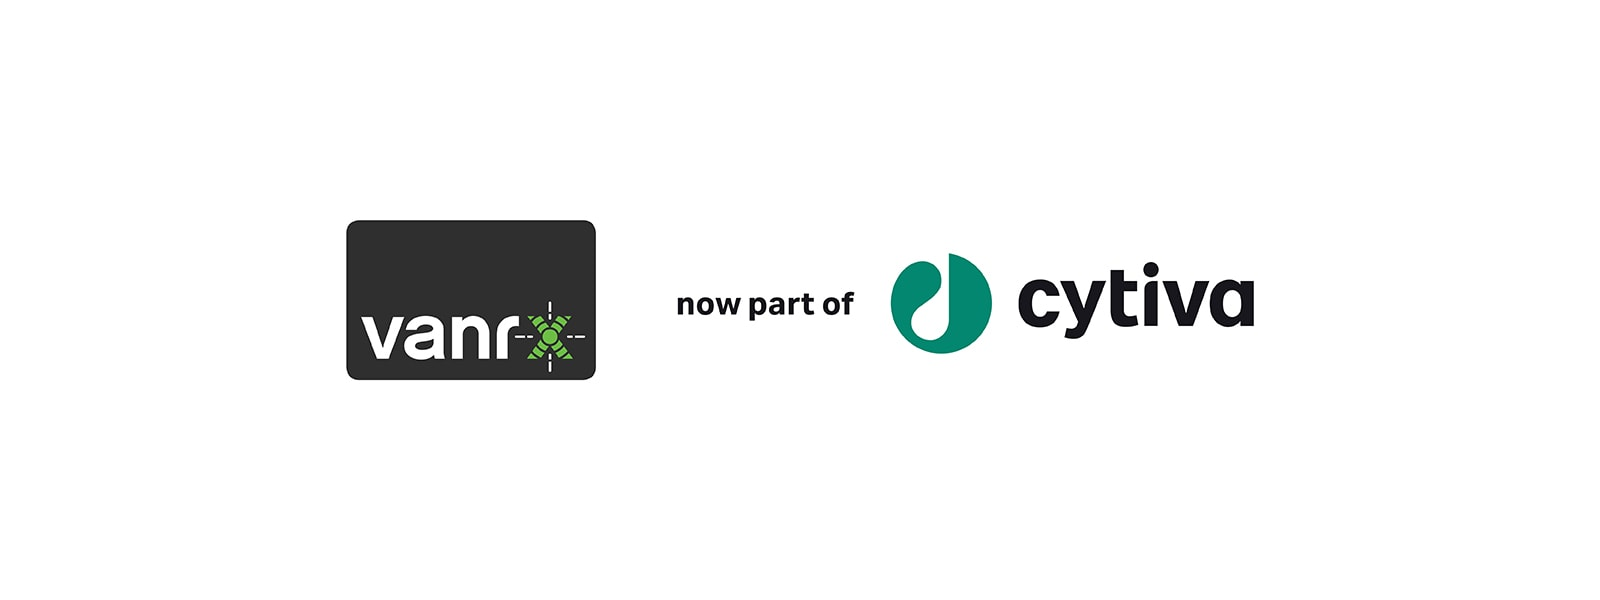 On Feb. 1, 2021, Cytiva acquired Vanrx Pharmasystems, the Canadian aseptic filling innovator.